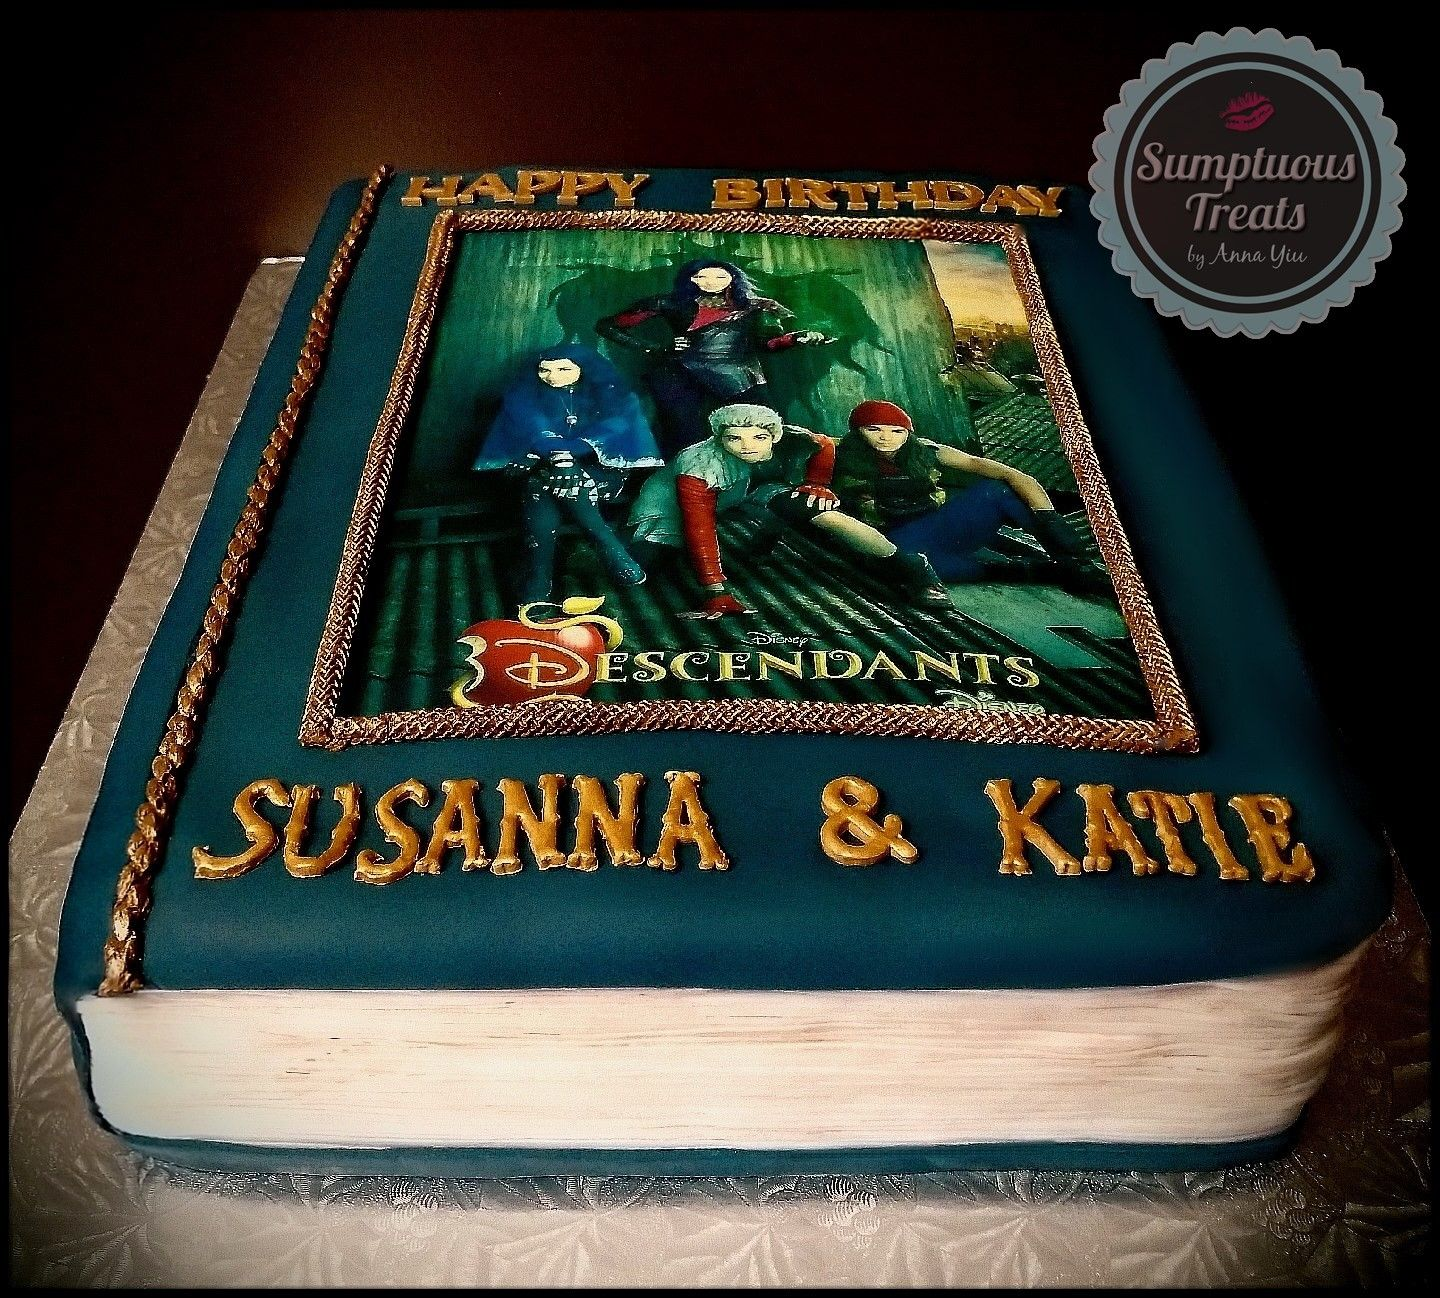 Disney Descendants Book Cake CustomMadeToOrder Cakes Desserts